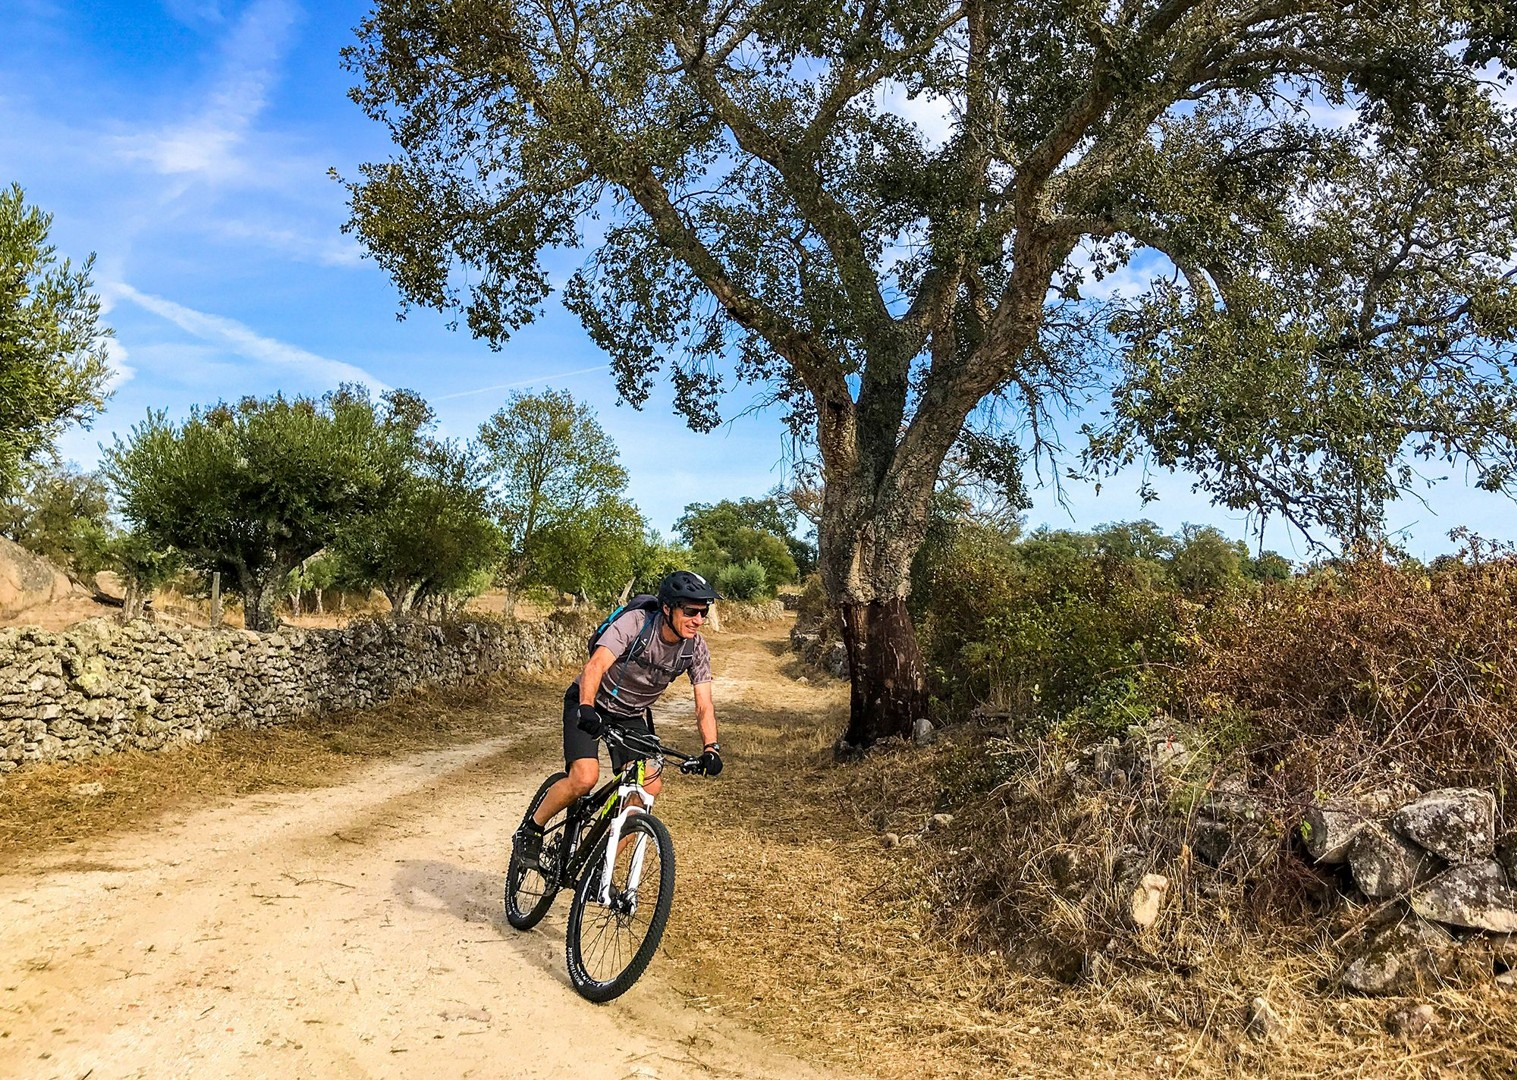 saddle-skedaddle-guided-mountain-bike-holiday-roman-trails.jpg - Portugal - Roman Trails - Guided Mountain Bike Holiday - Mountain Biking